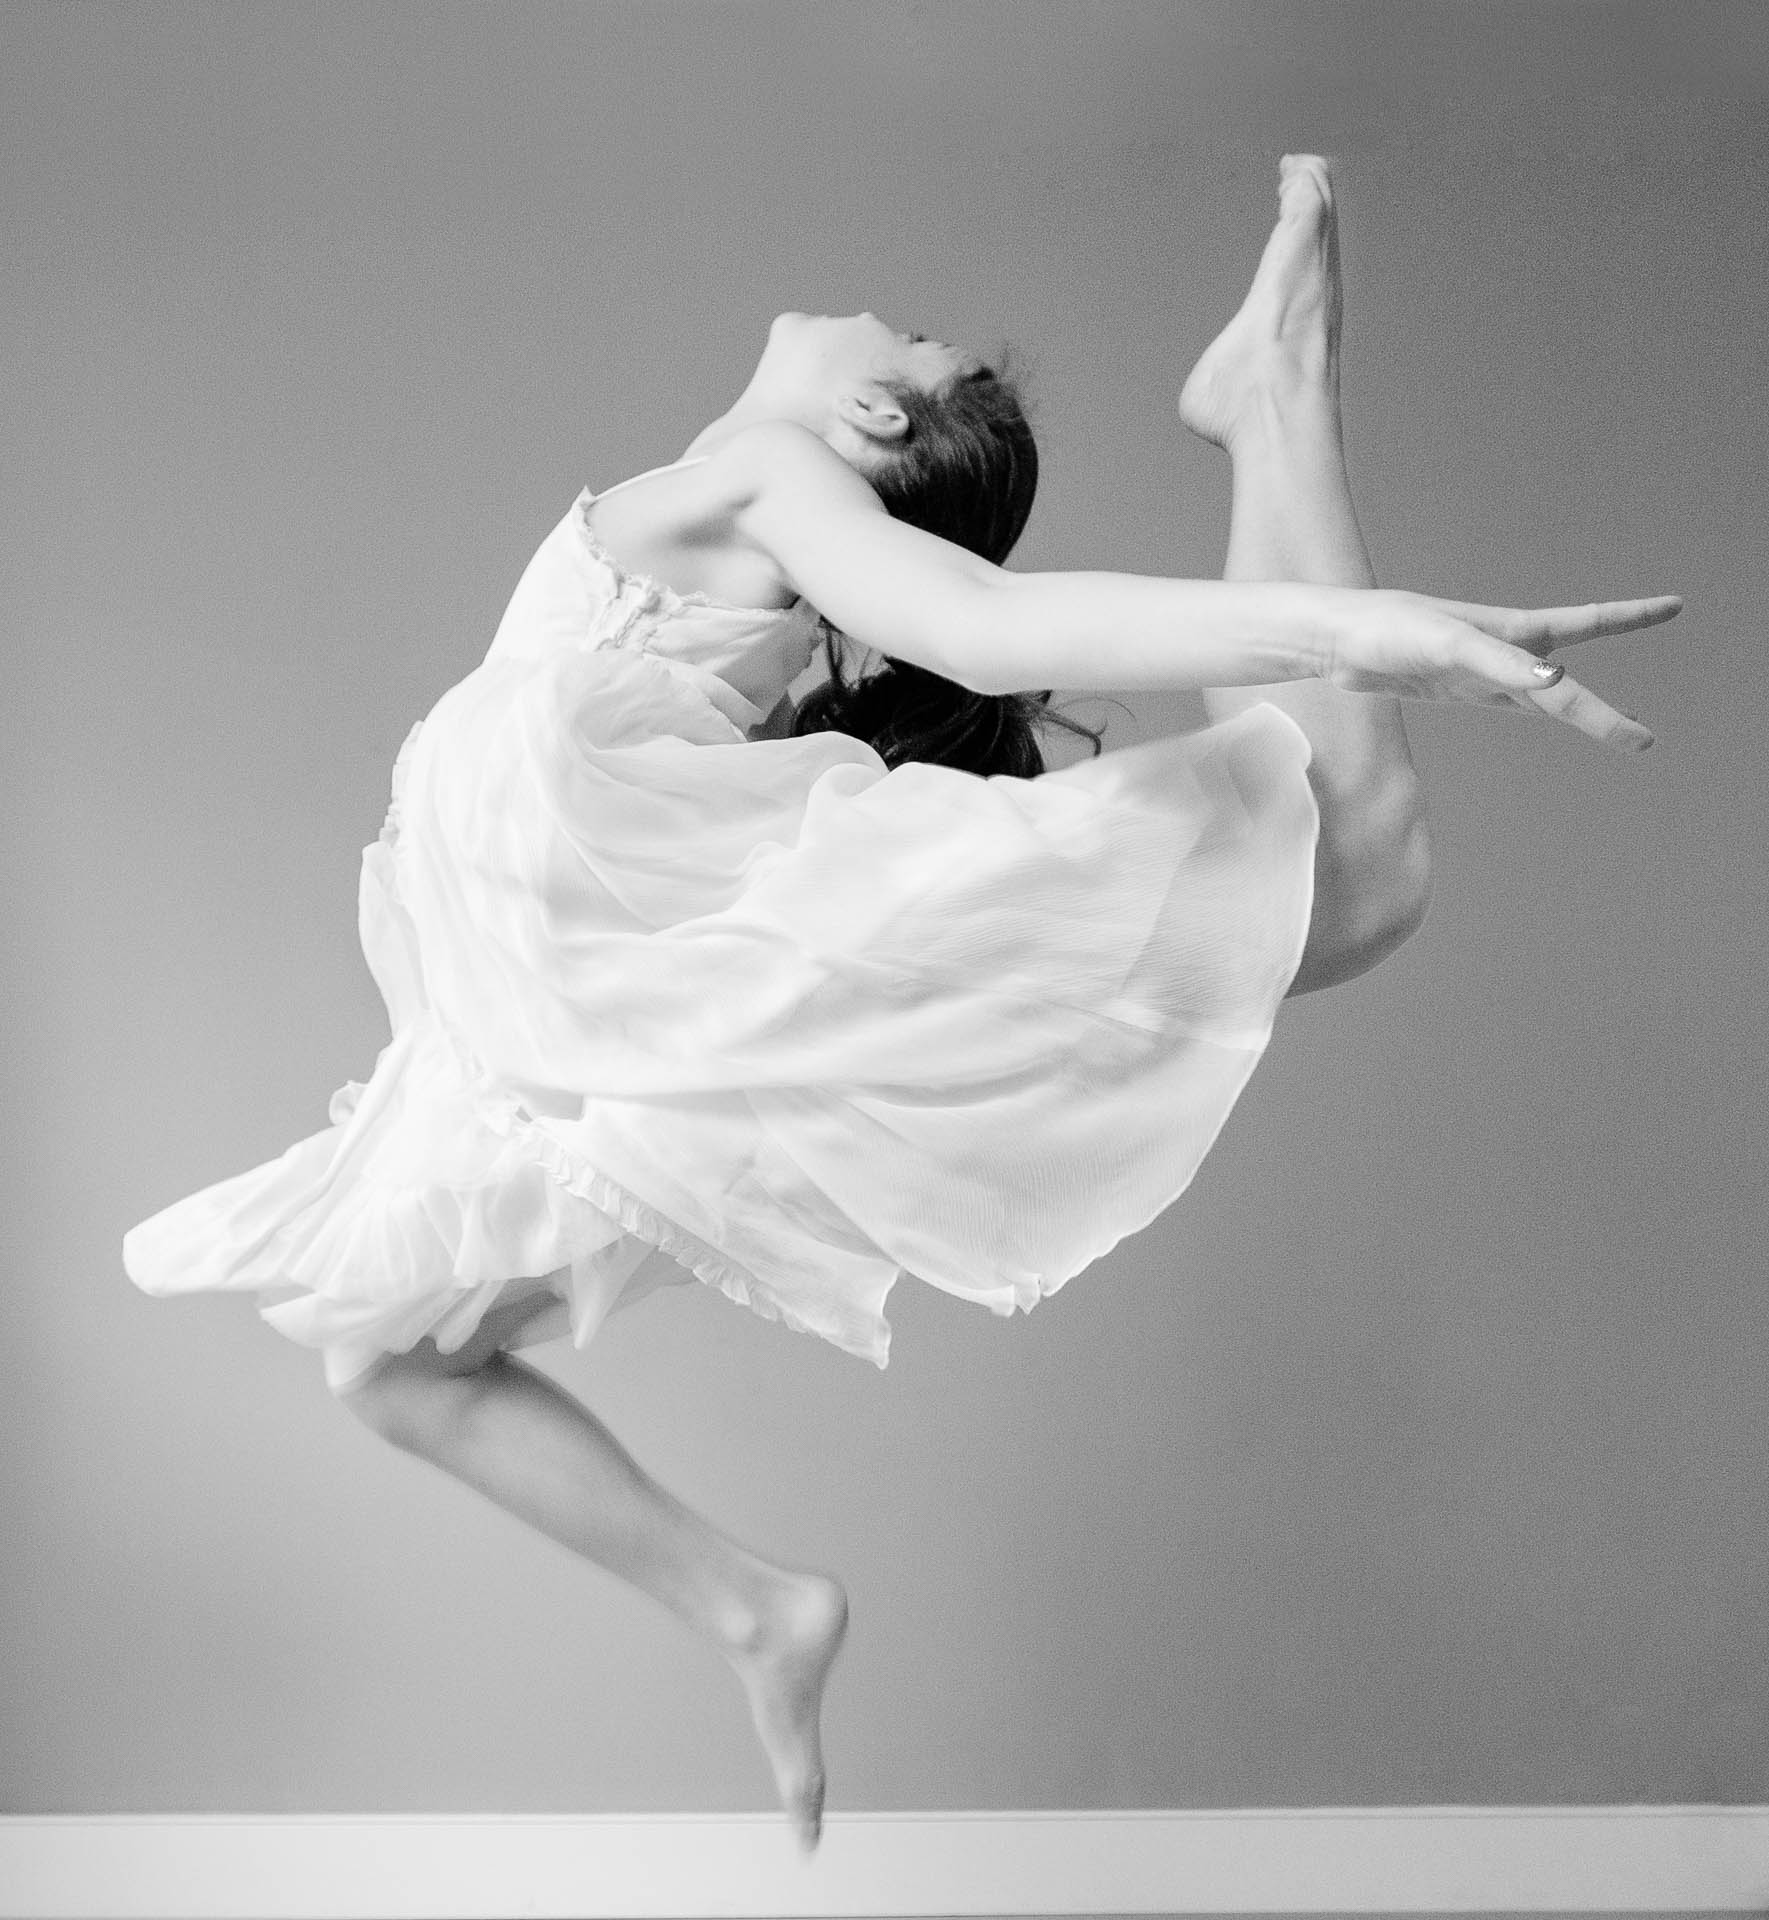 teenage photography girl in white dress leaping through air